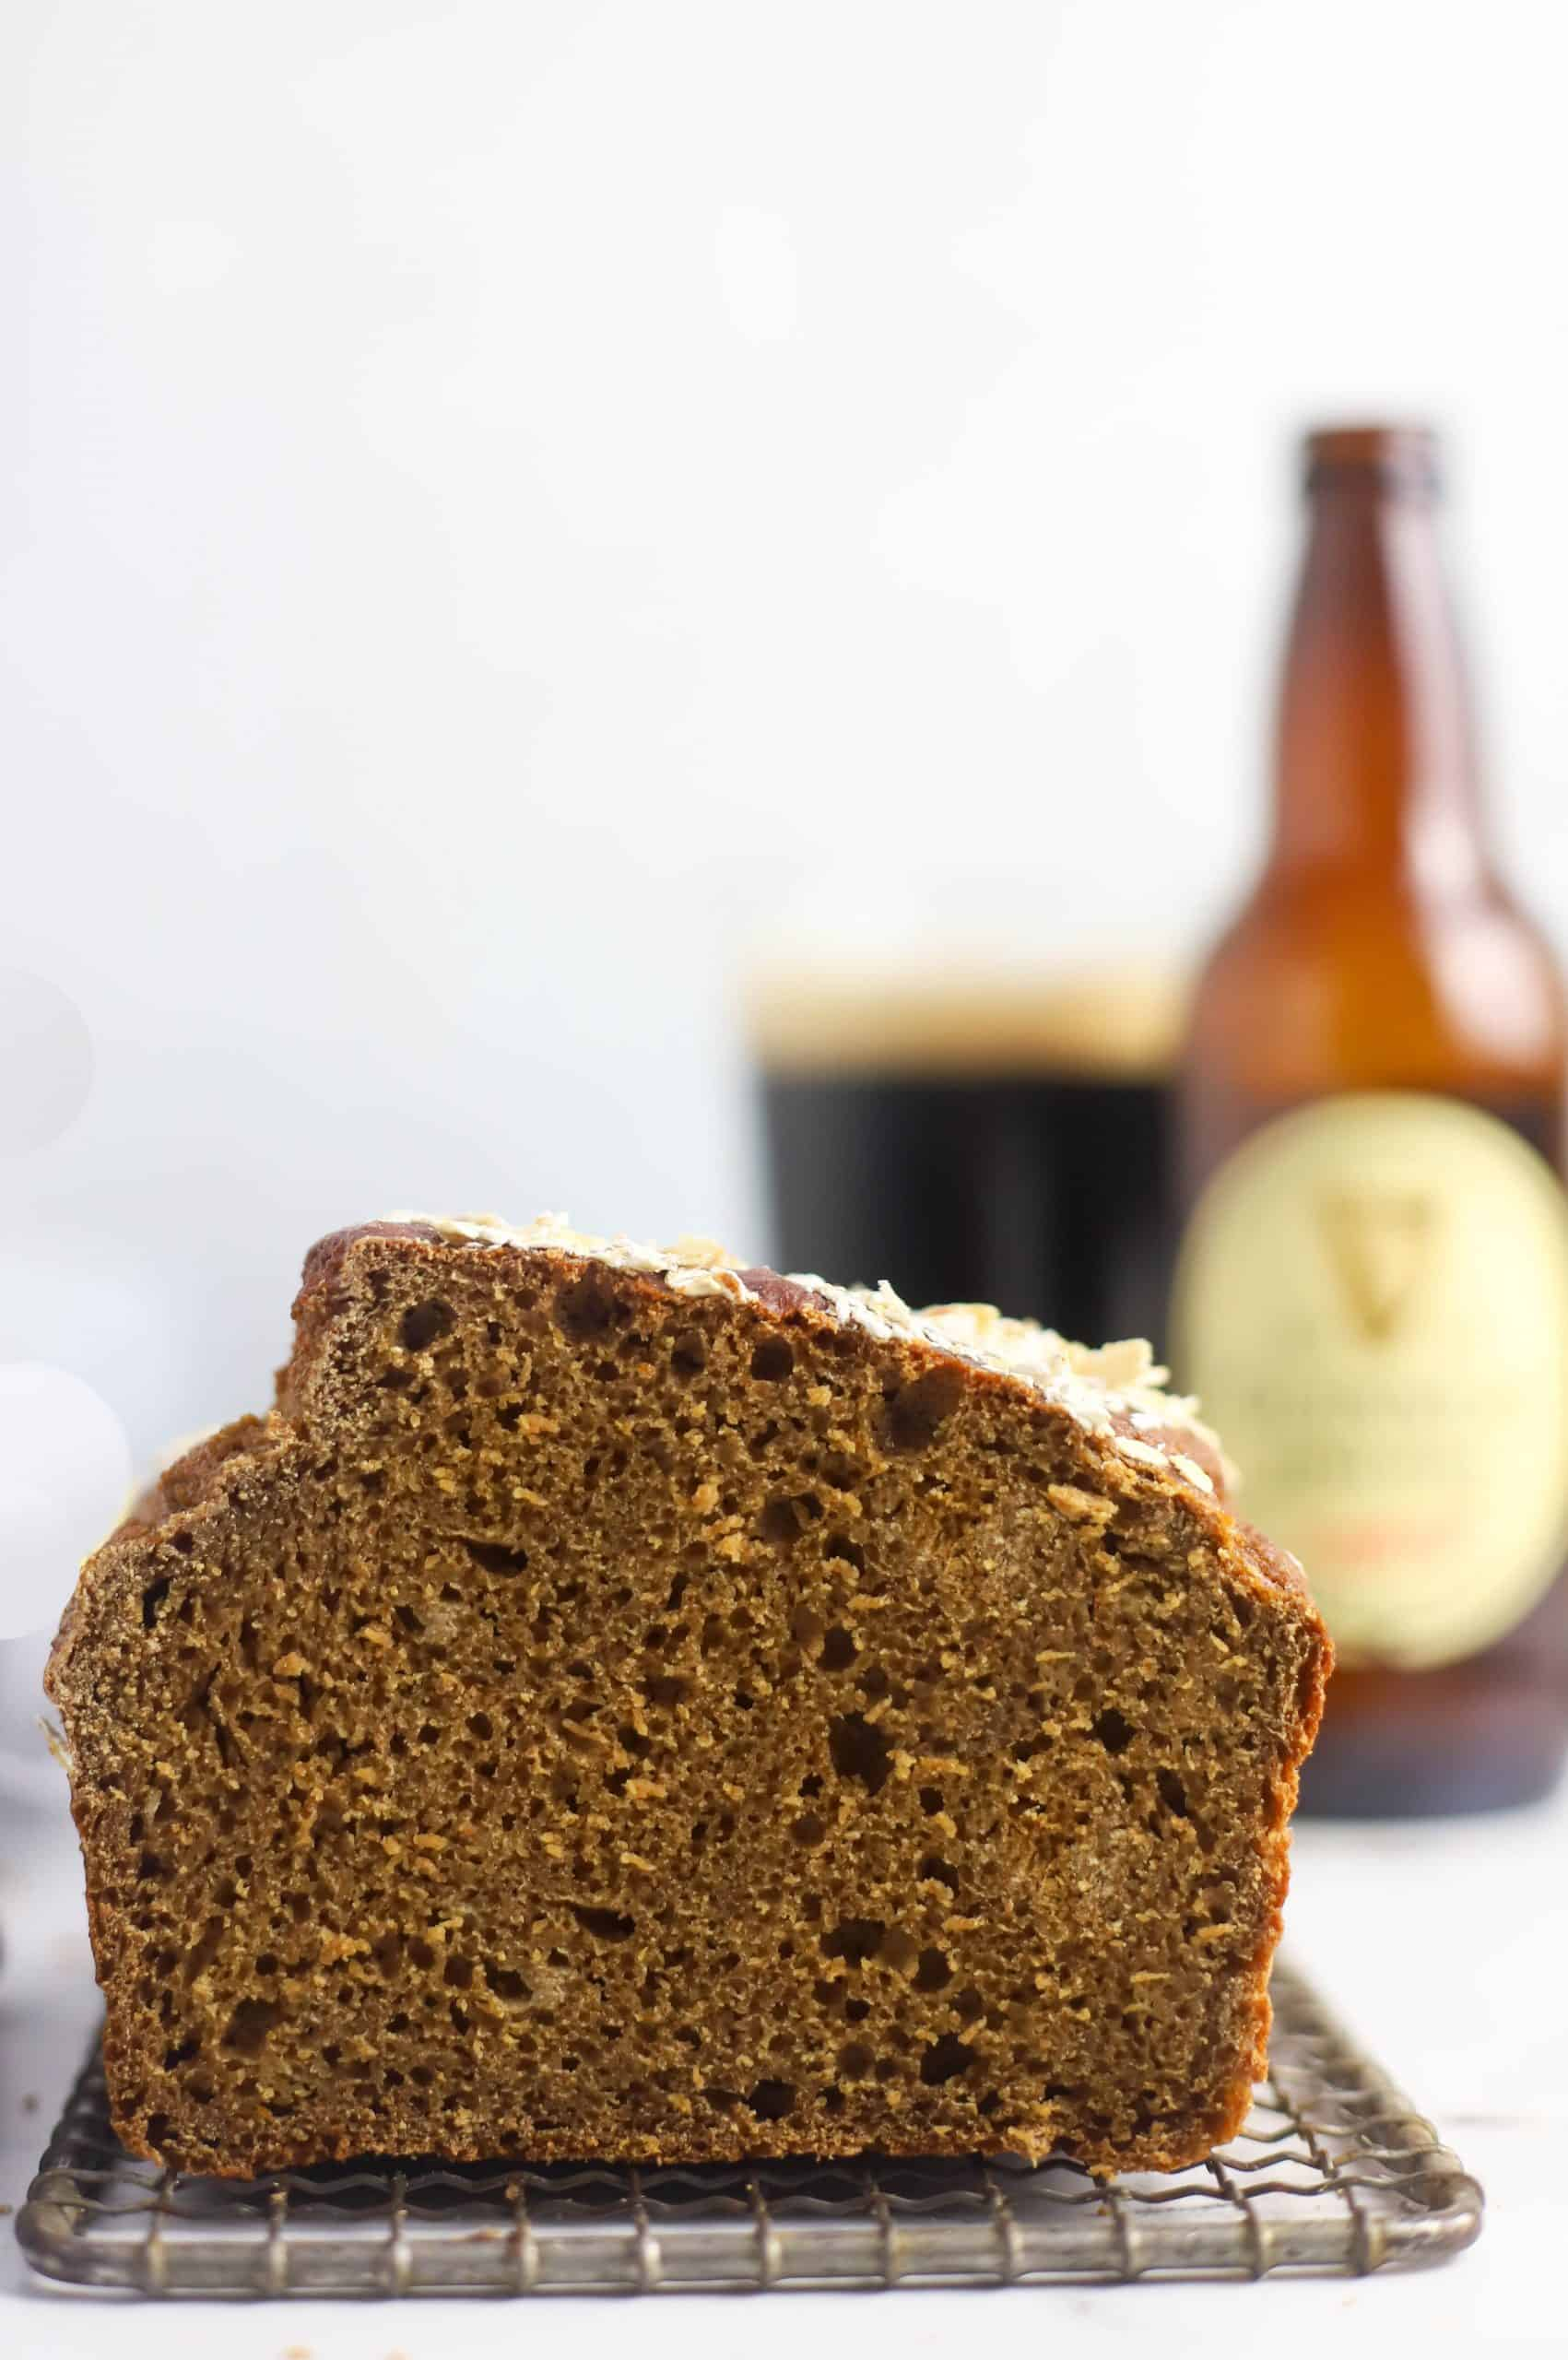 Guinness bread, bottle of beer and a glass full of beer